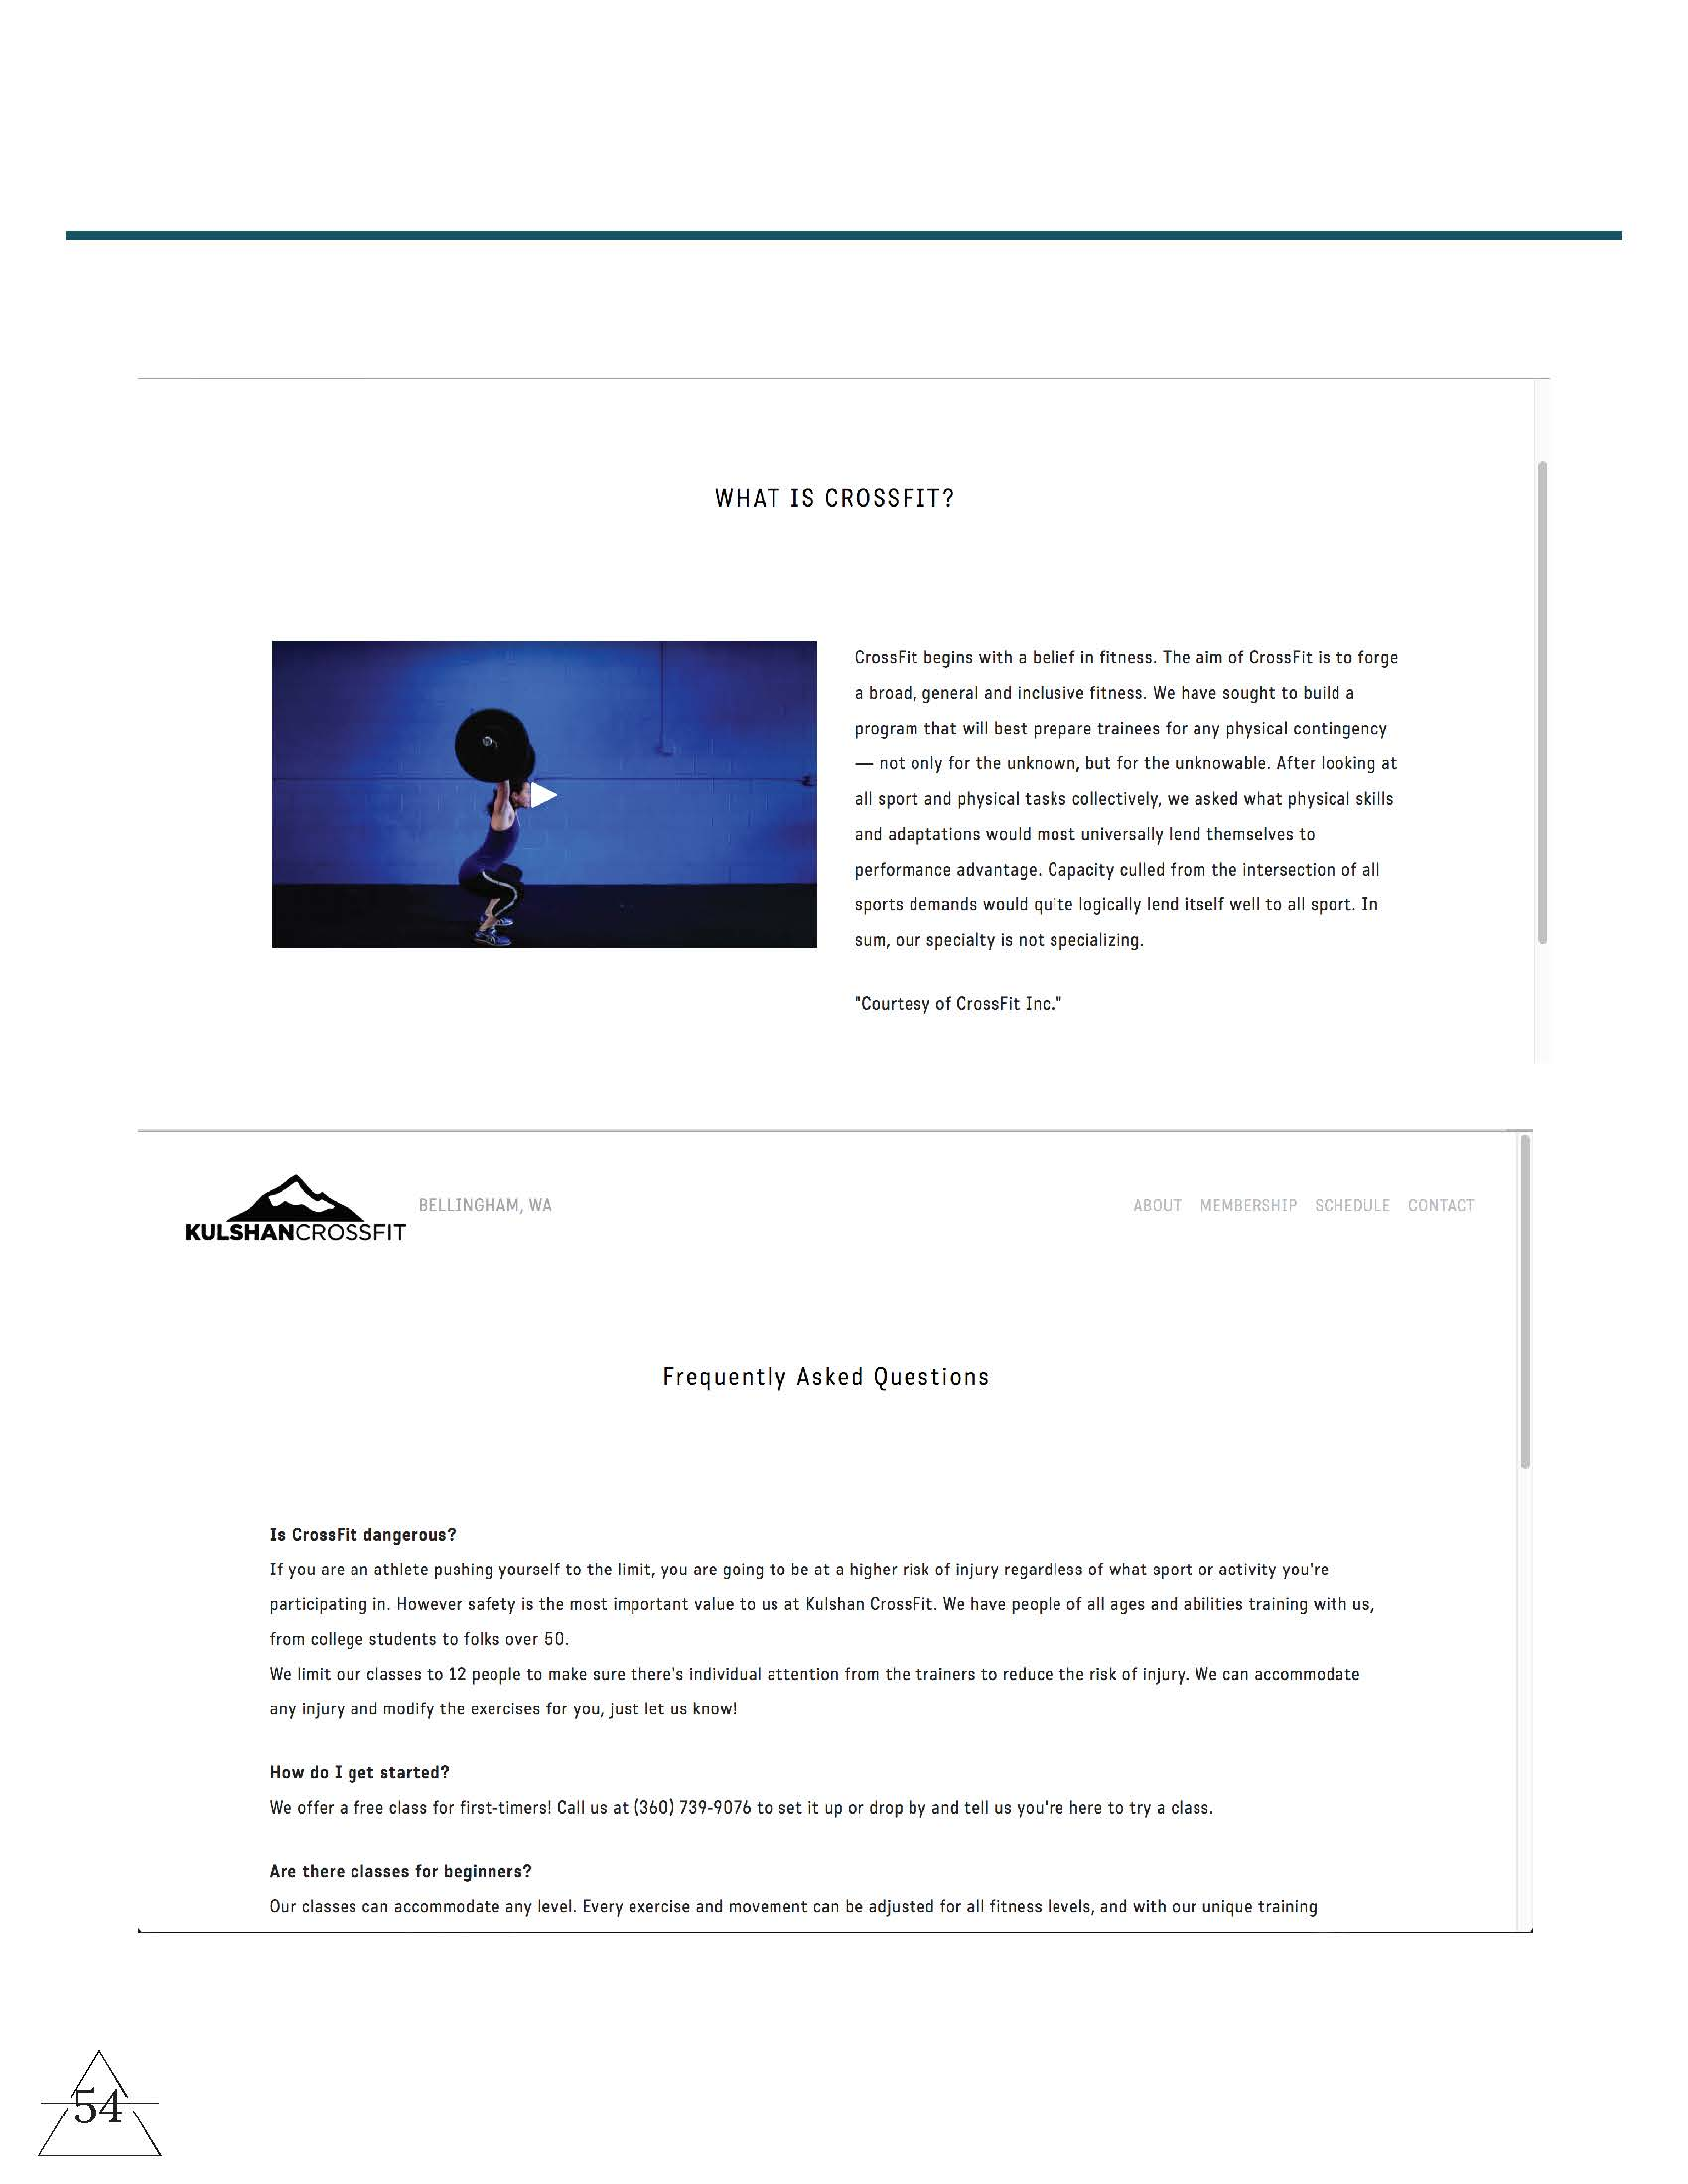 CAMPAIGNS BOOKLET FINAL_Page_54.jpg